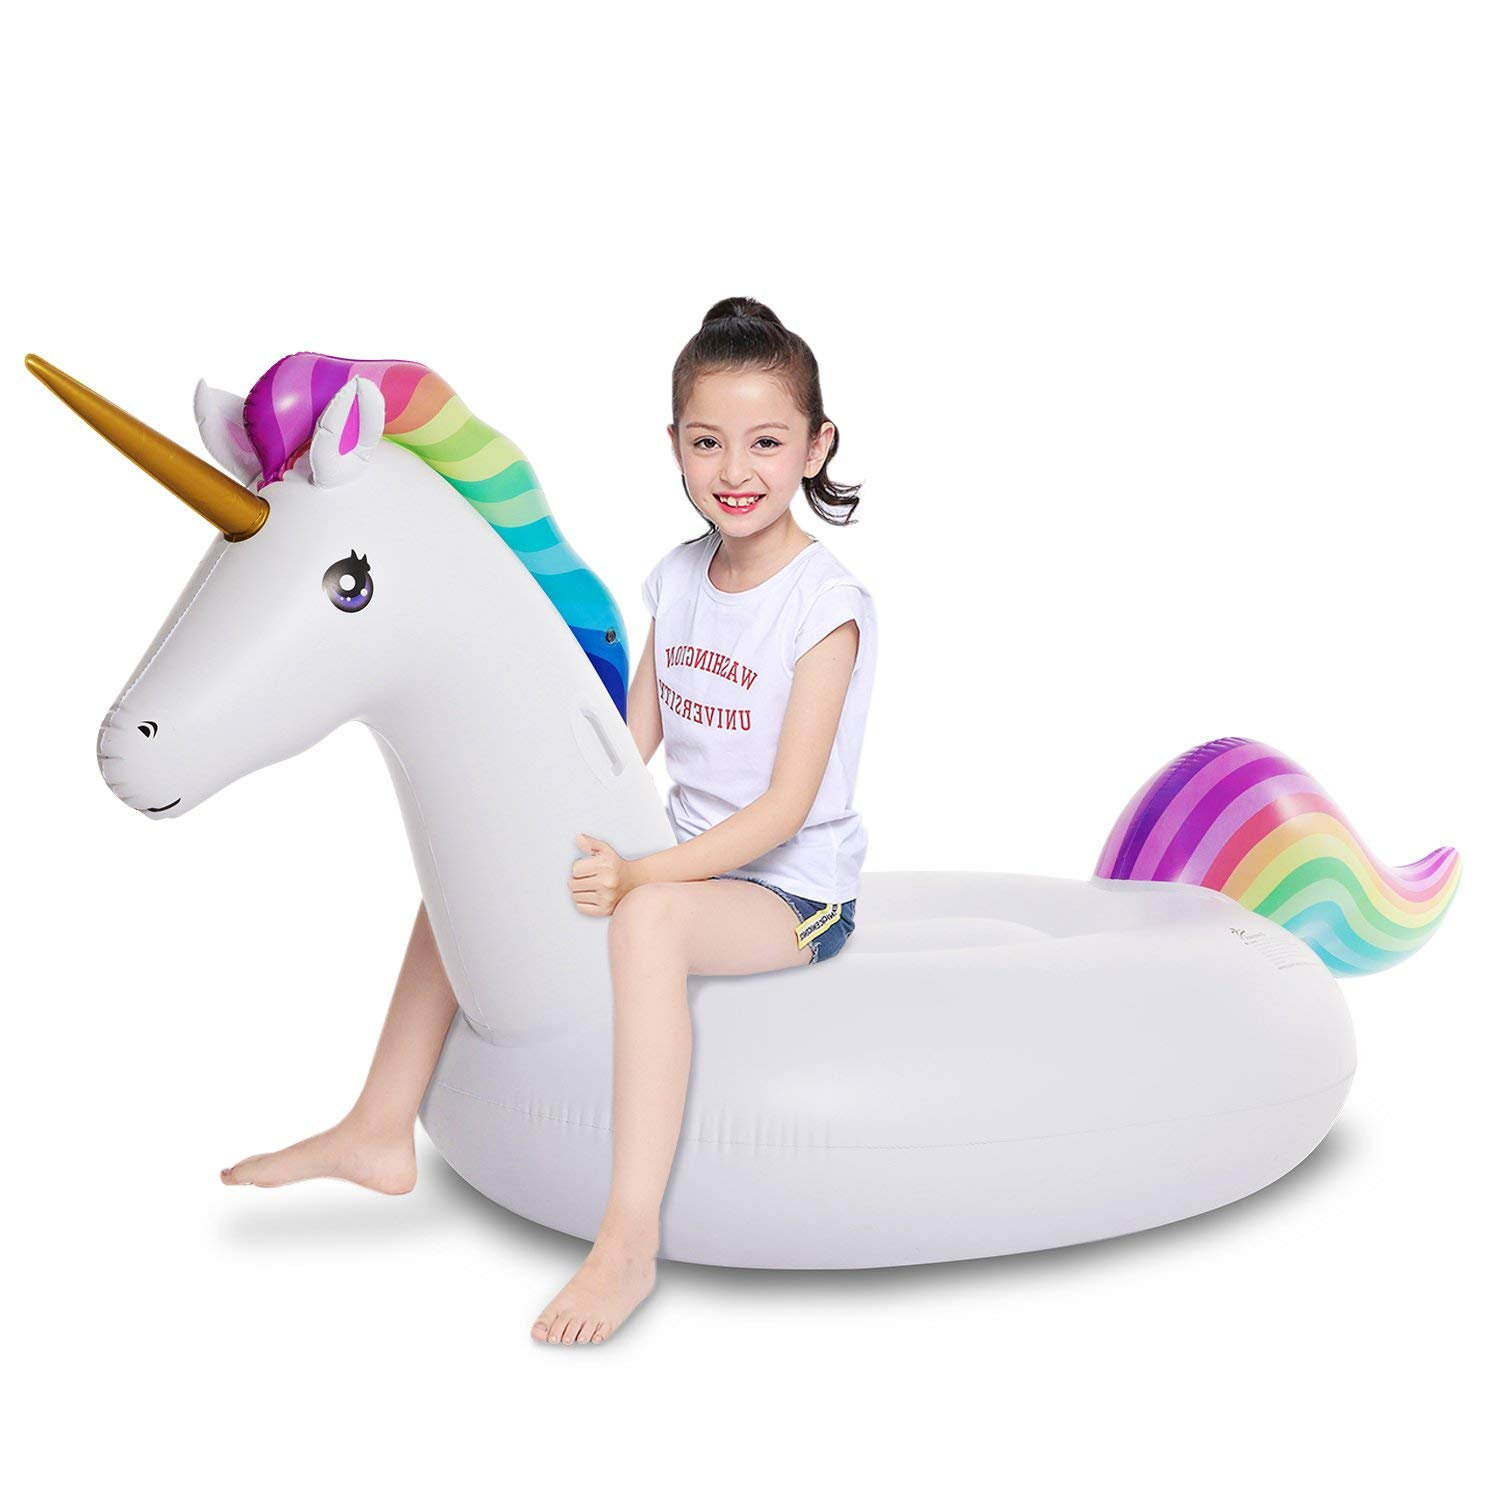 Jasonwell Big Inflatable Unicorn Pool Float Floatie Ride On with Fast Valves Large Rideable Blow Up Summer Beach Swimming Pool Party Lounge Raft Decorations Toys Kids Adults by Jasonwell